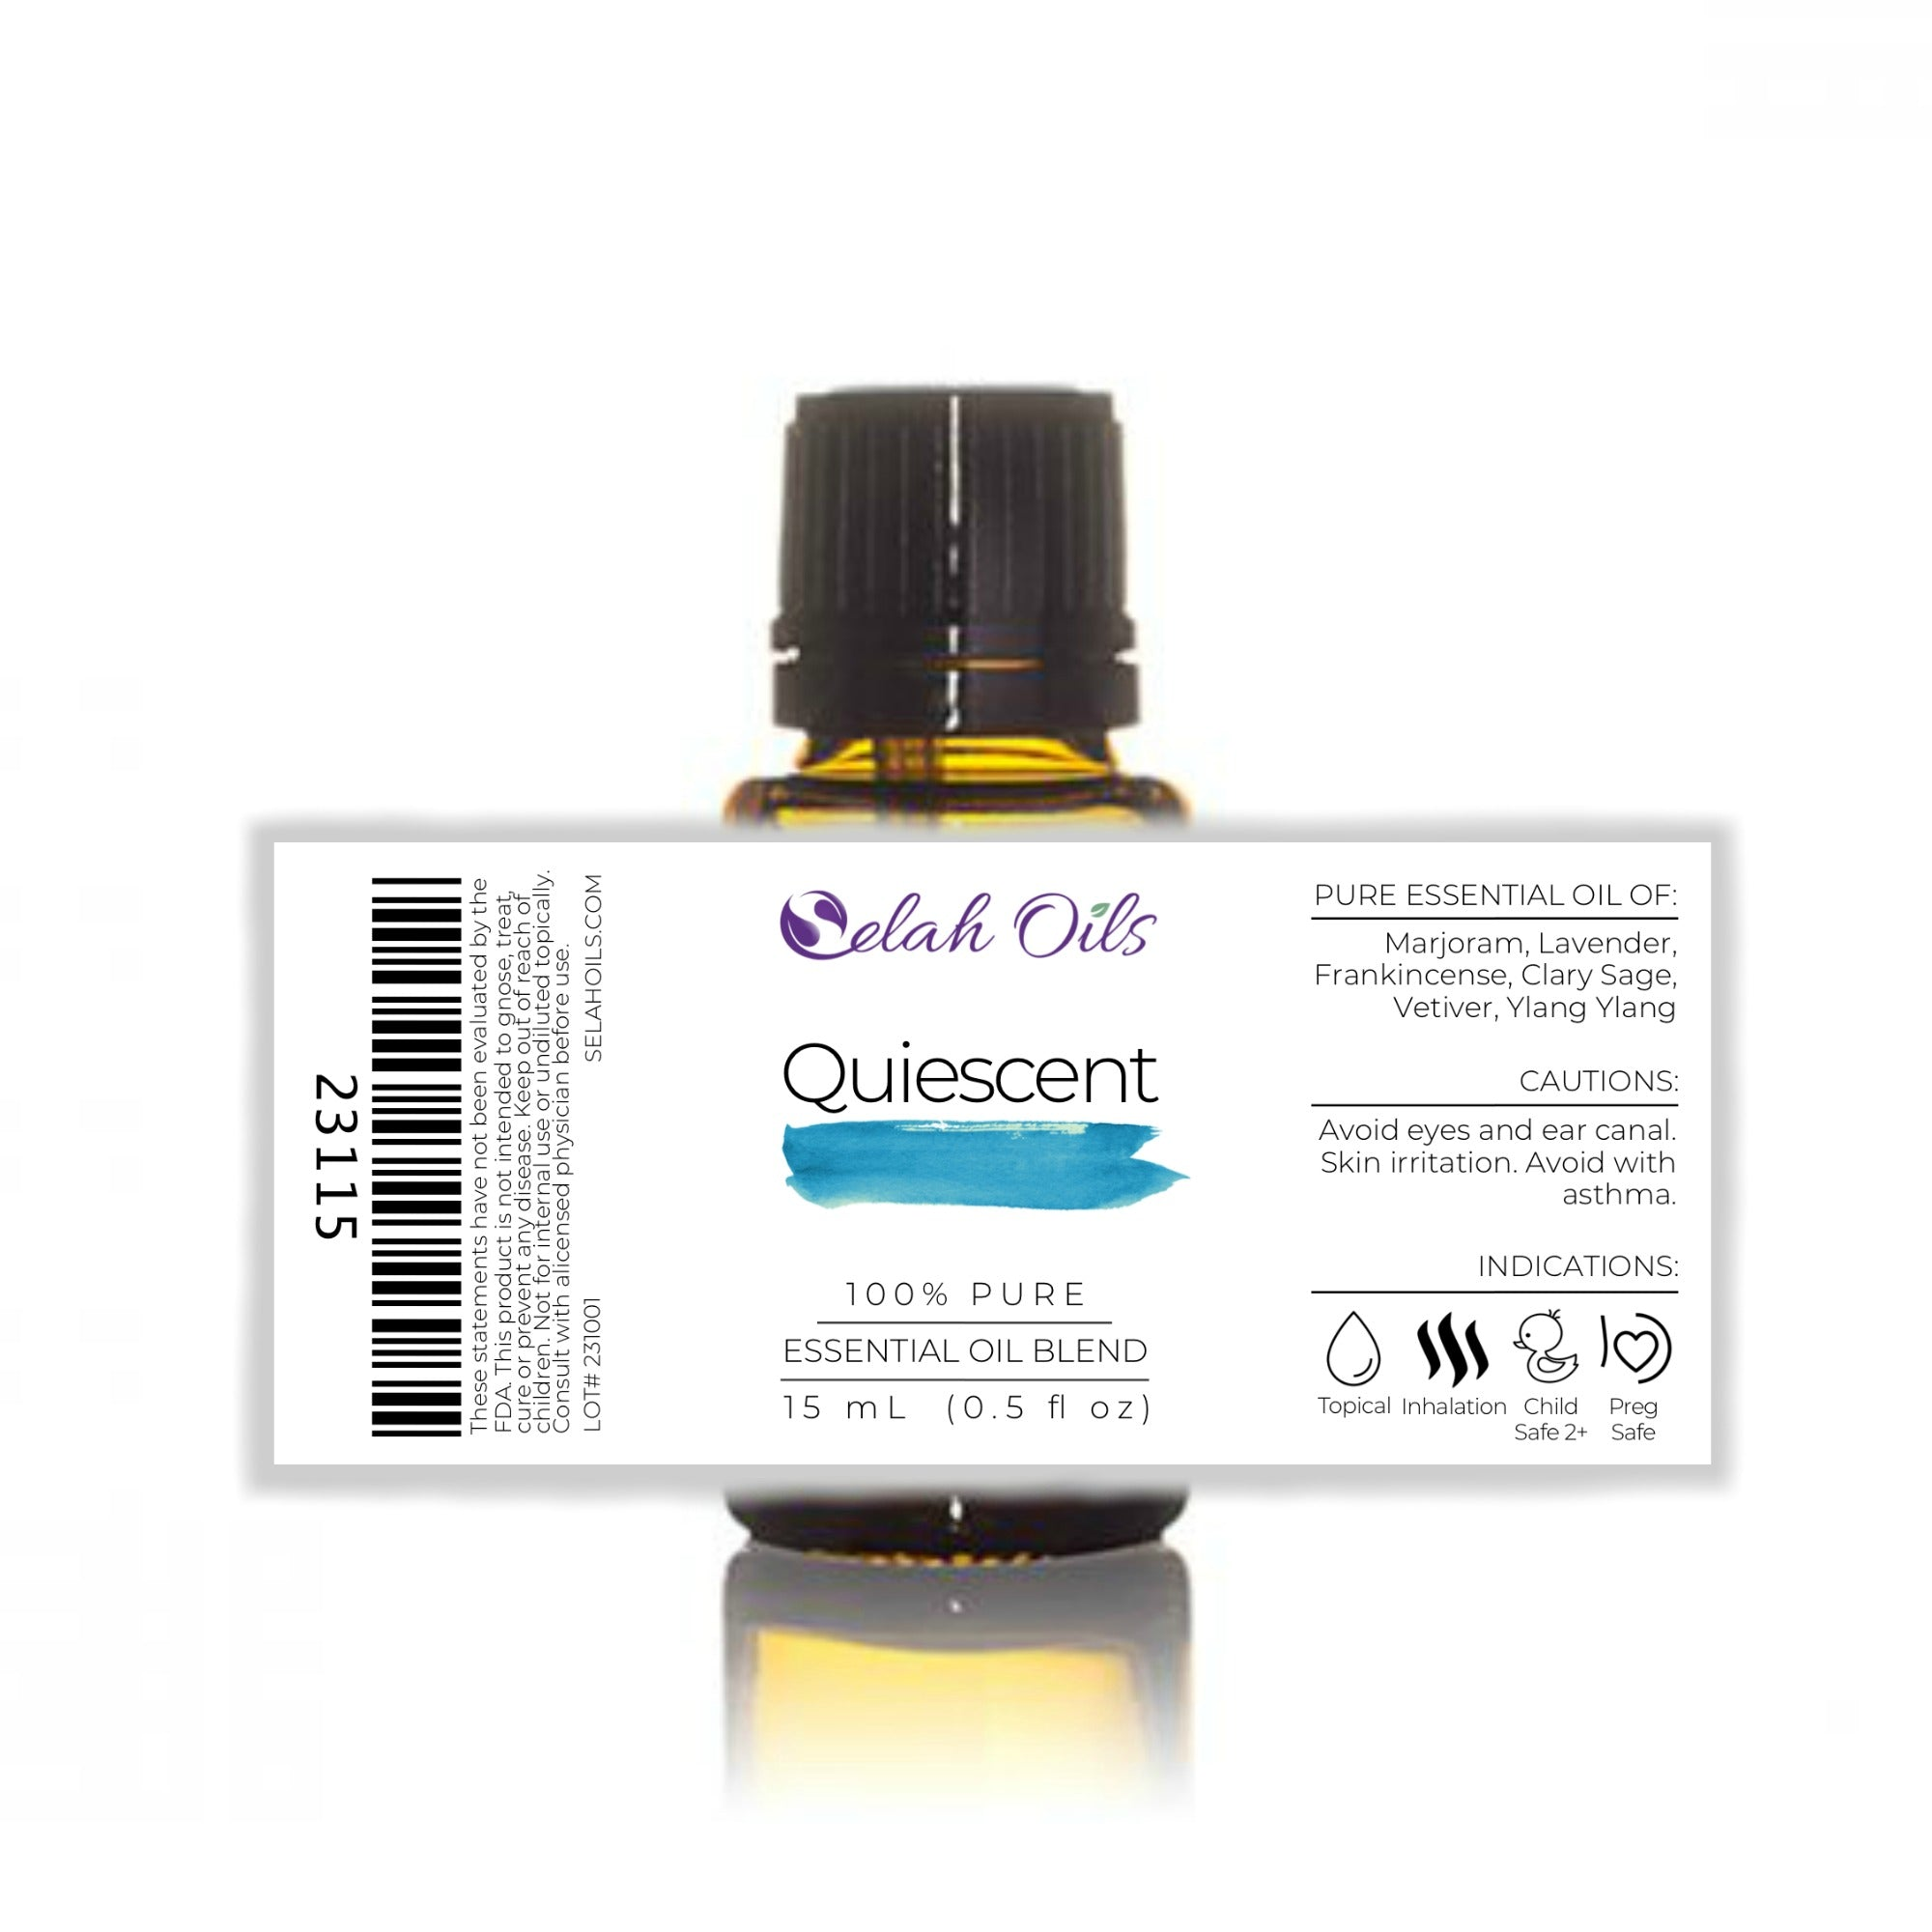 Quiescent Essential Oil Blend